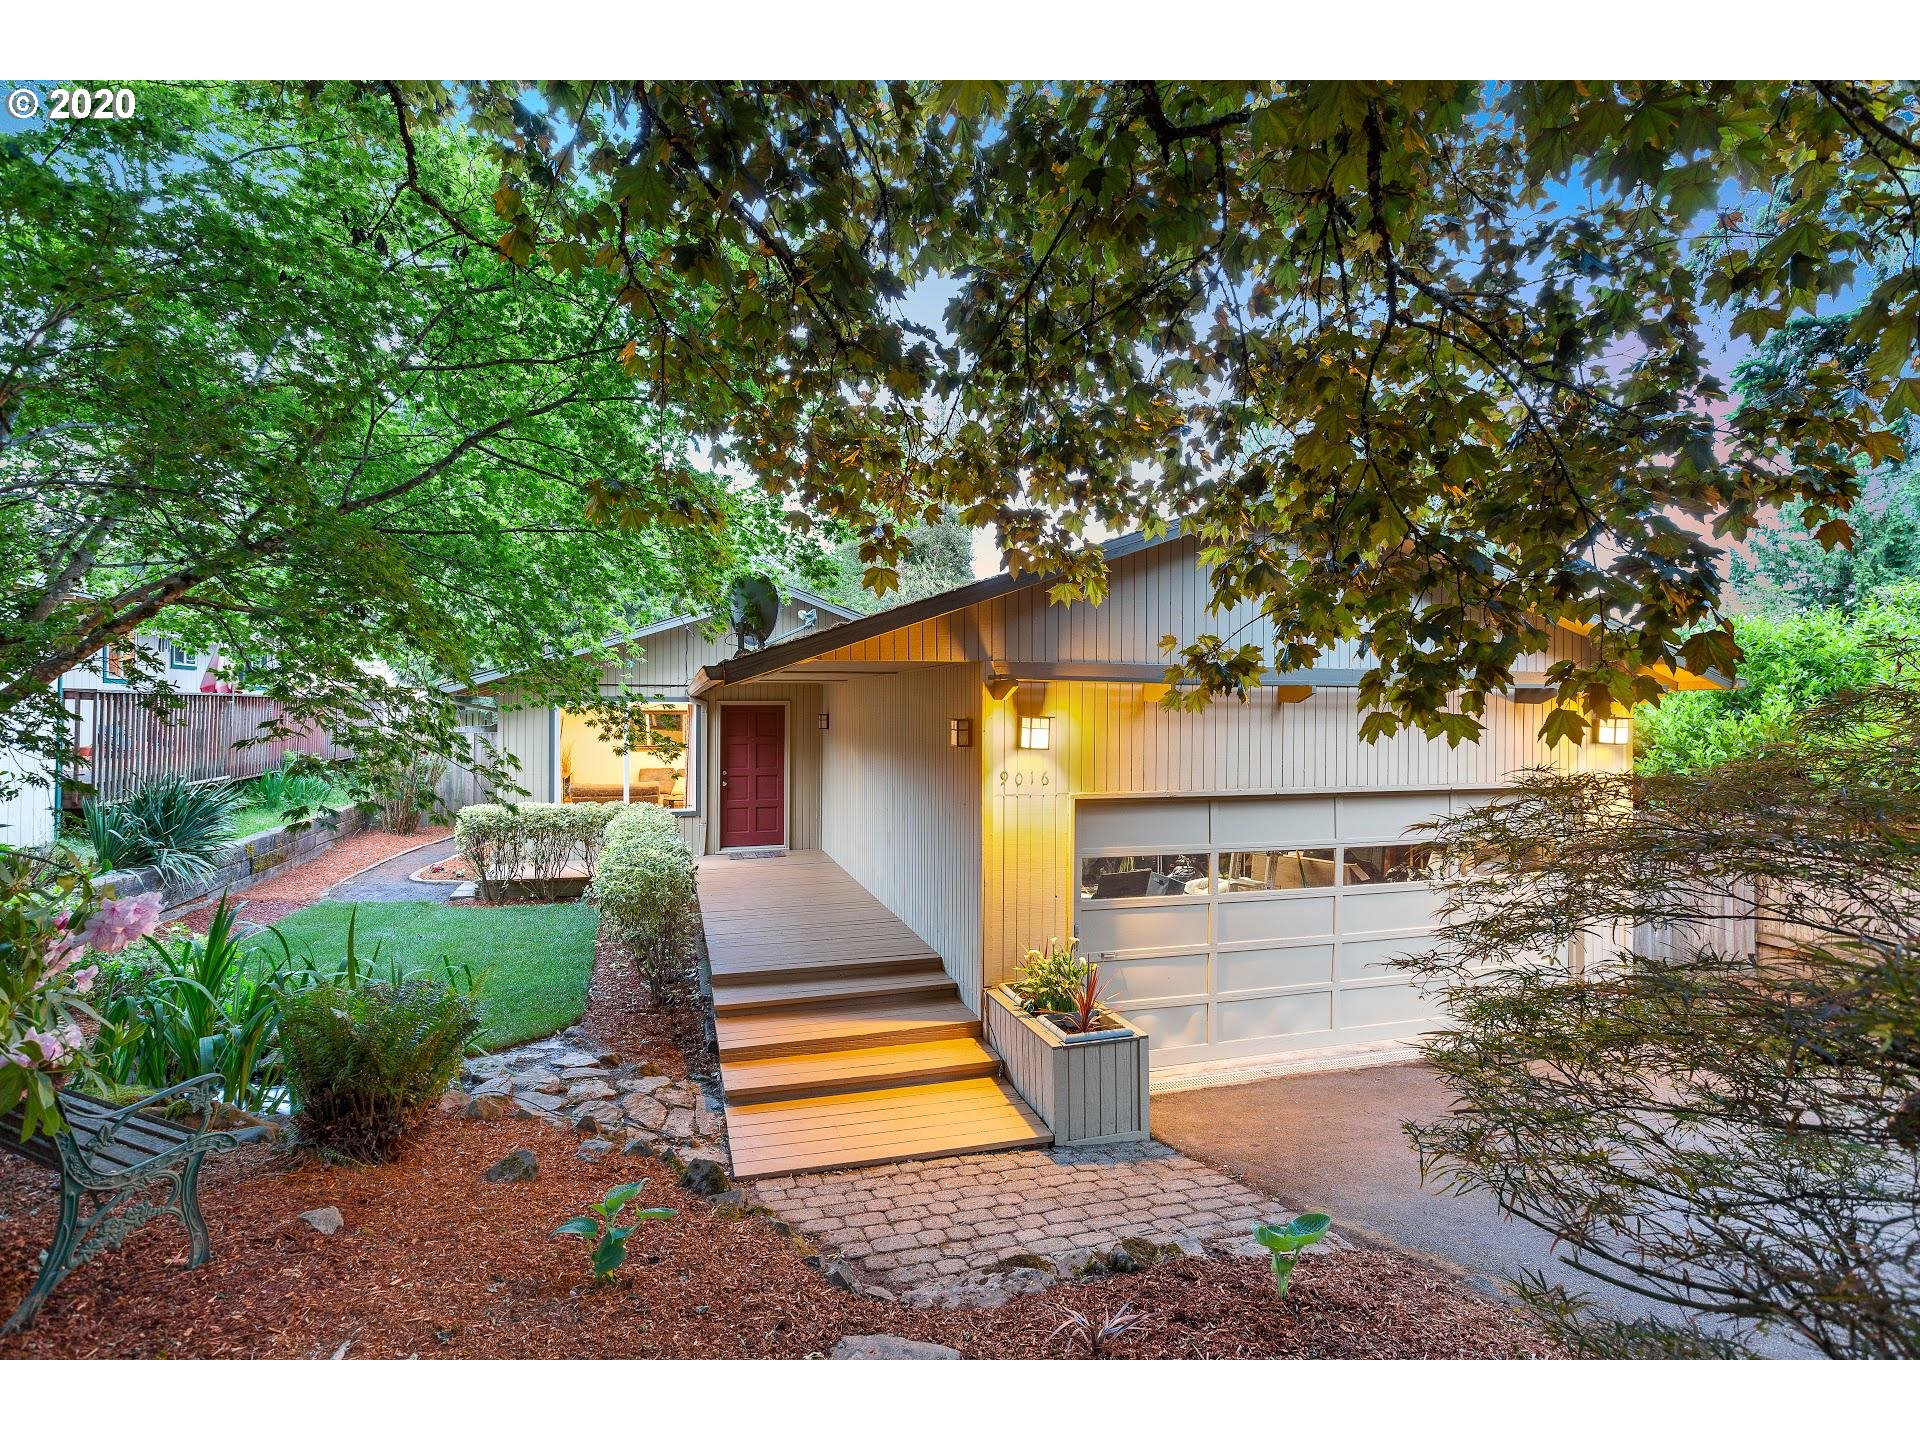 Almost $50k worth of love poured into this Urban Oasis remodel! Live simply & beautifully in this light filled home well situated on a fenced &  private lot. Flexible floor plan; bonus room w full bath for guests or live in family. One level living, raised beds for gardening, covered deck (35'x10') w/ hot tub, nearby parks + OHSU express bus route.  New 30 Year Roof (2020), full kitchen remodel (2016), paint/carpet, complete landscaping!  All appliances included. See Floorplan/3D Virtual tour!